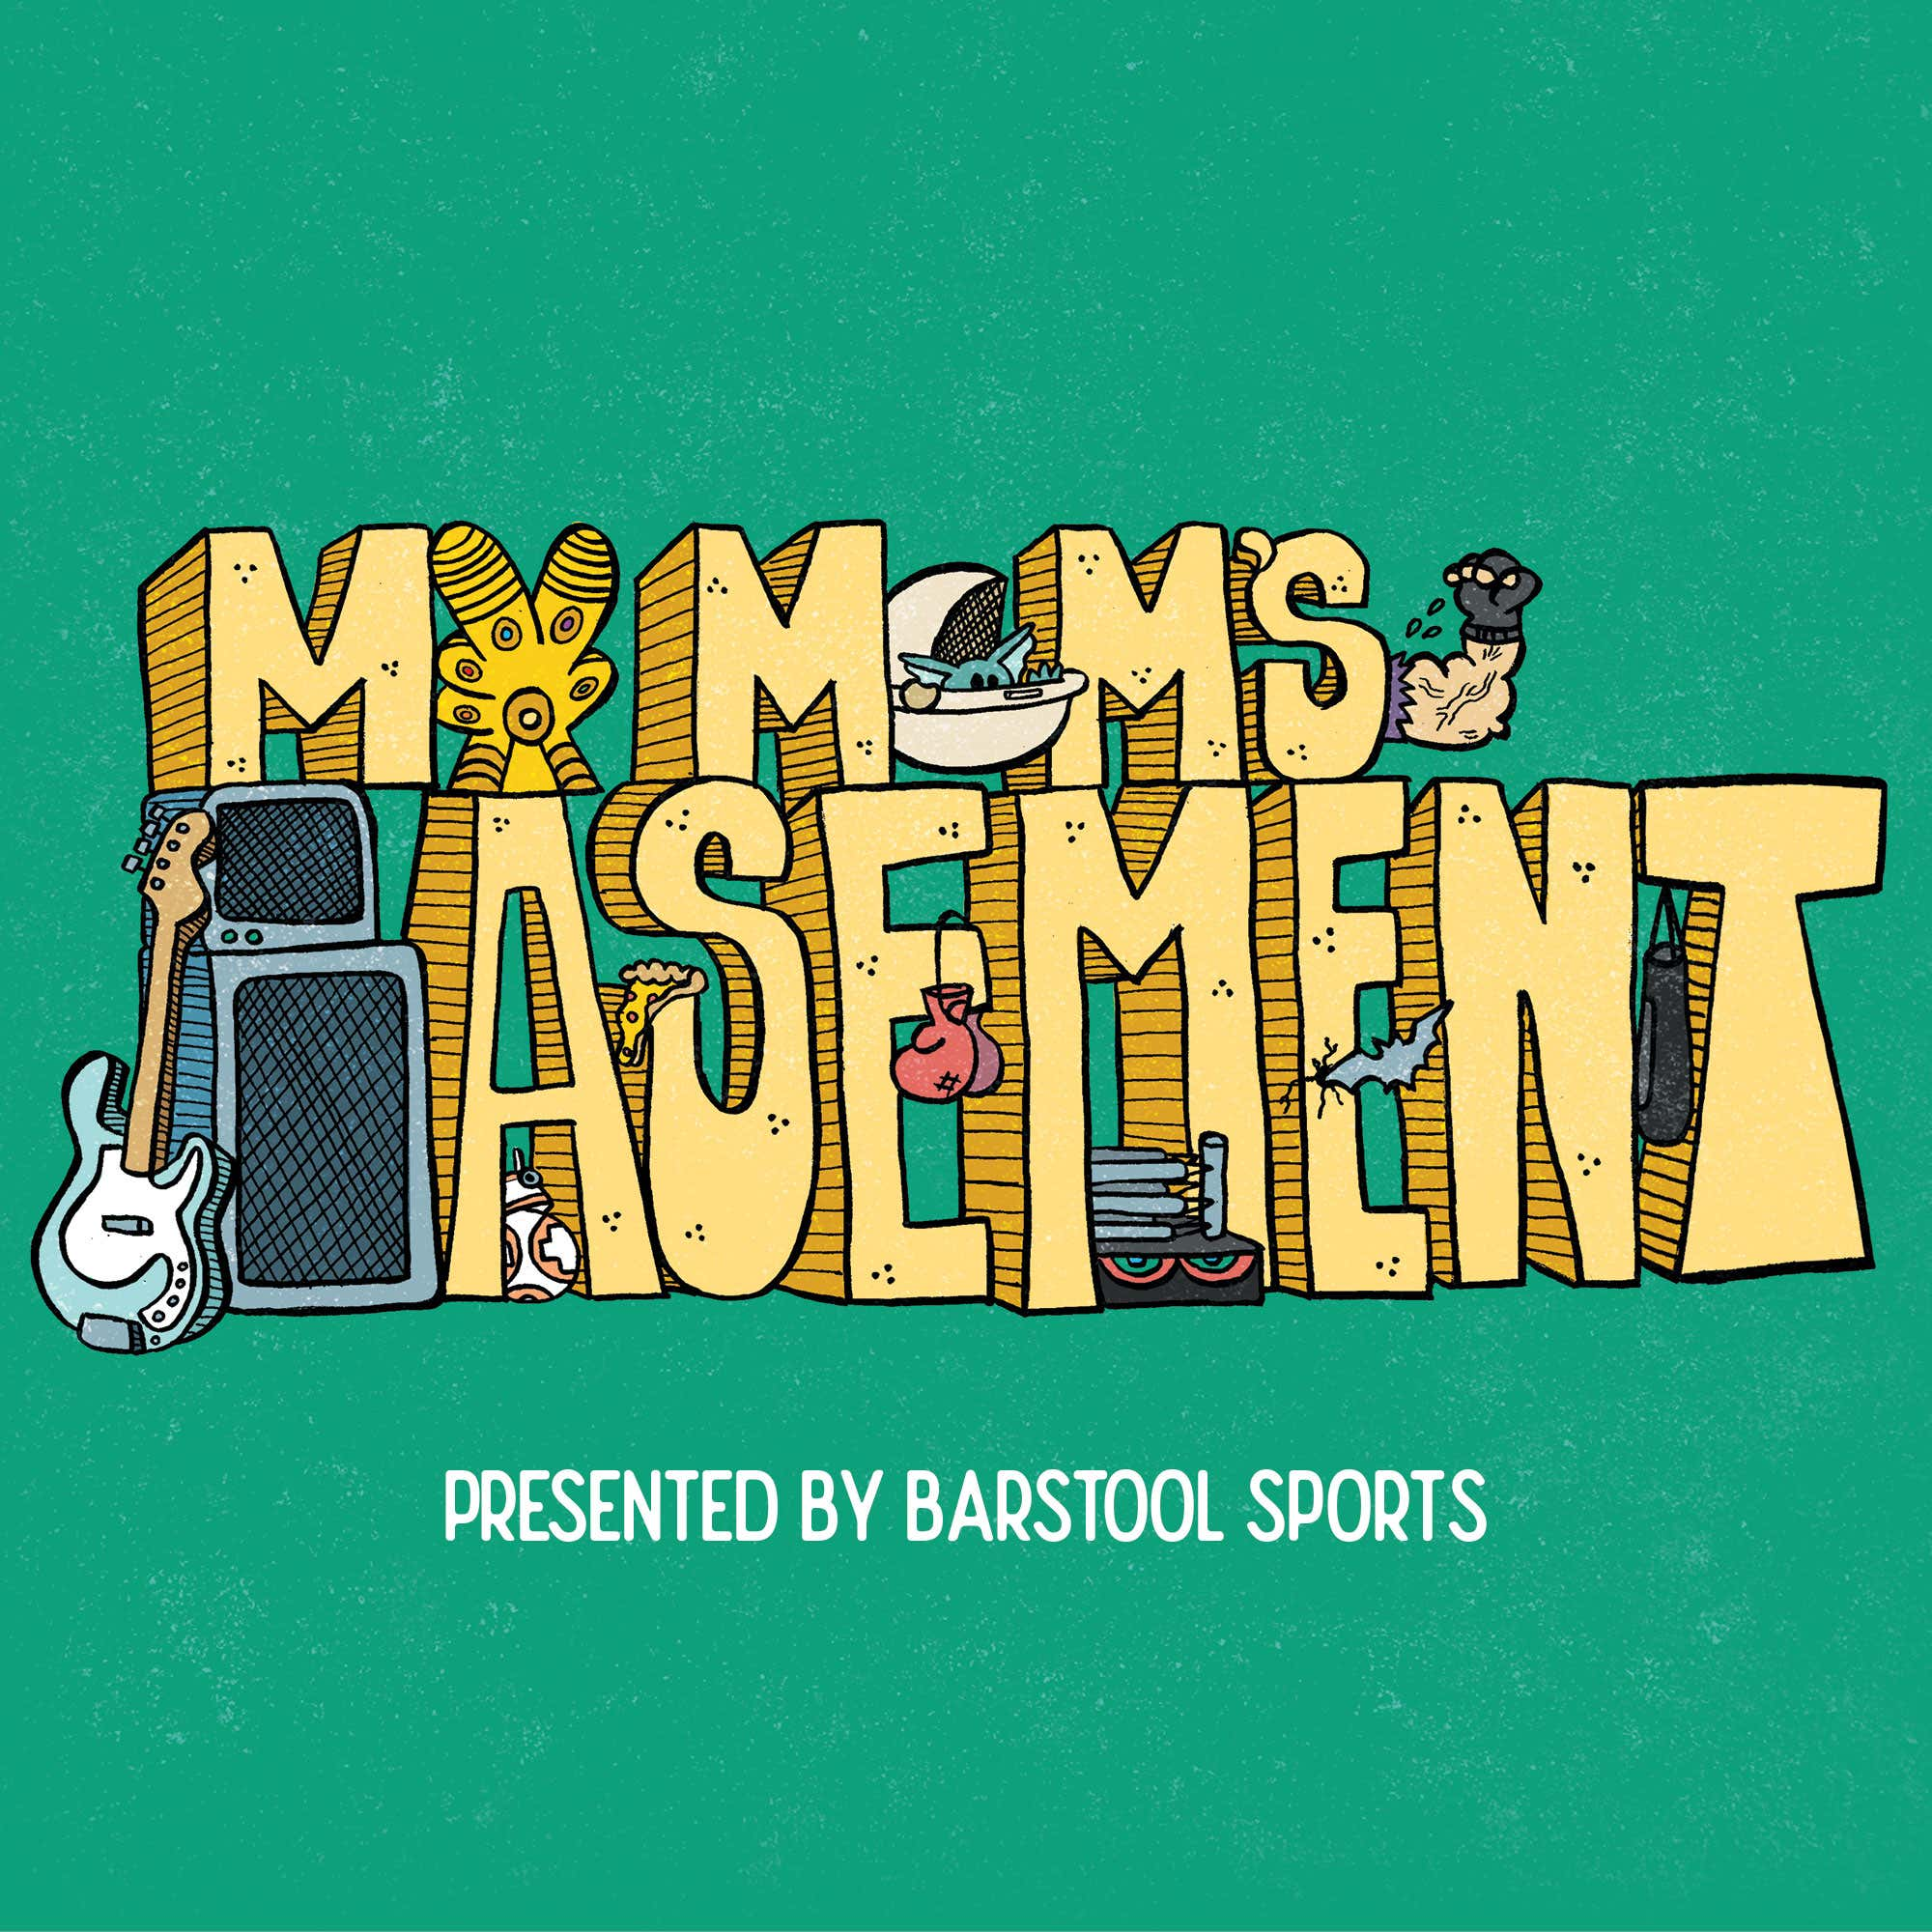 My_Moms_Basement_Logo_2000x2000.jpg